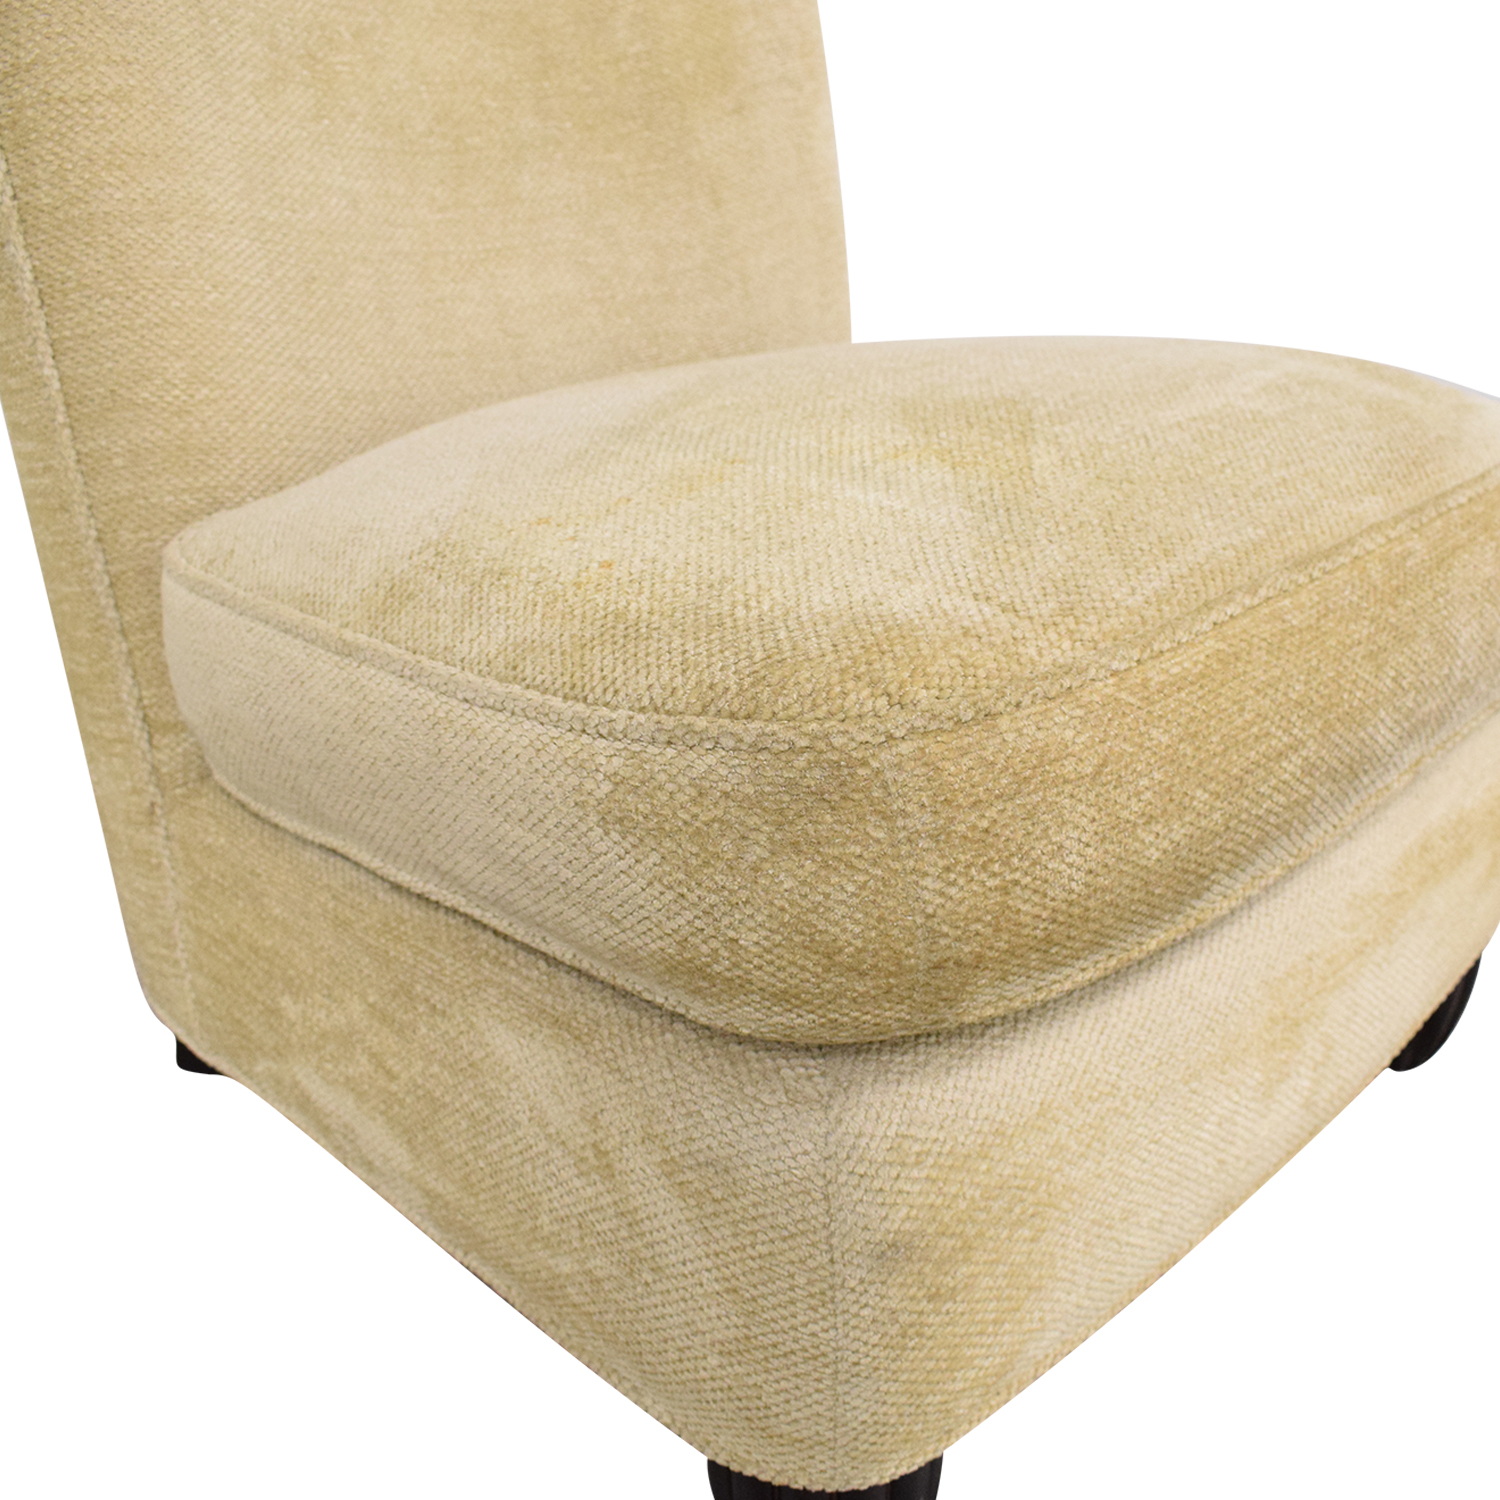 Baker Furniture Barbara Barry Slipper Chair / Chairs